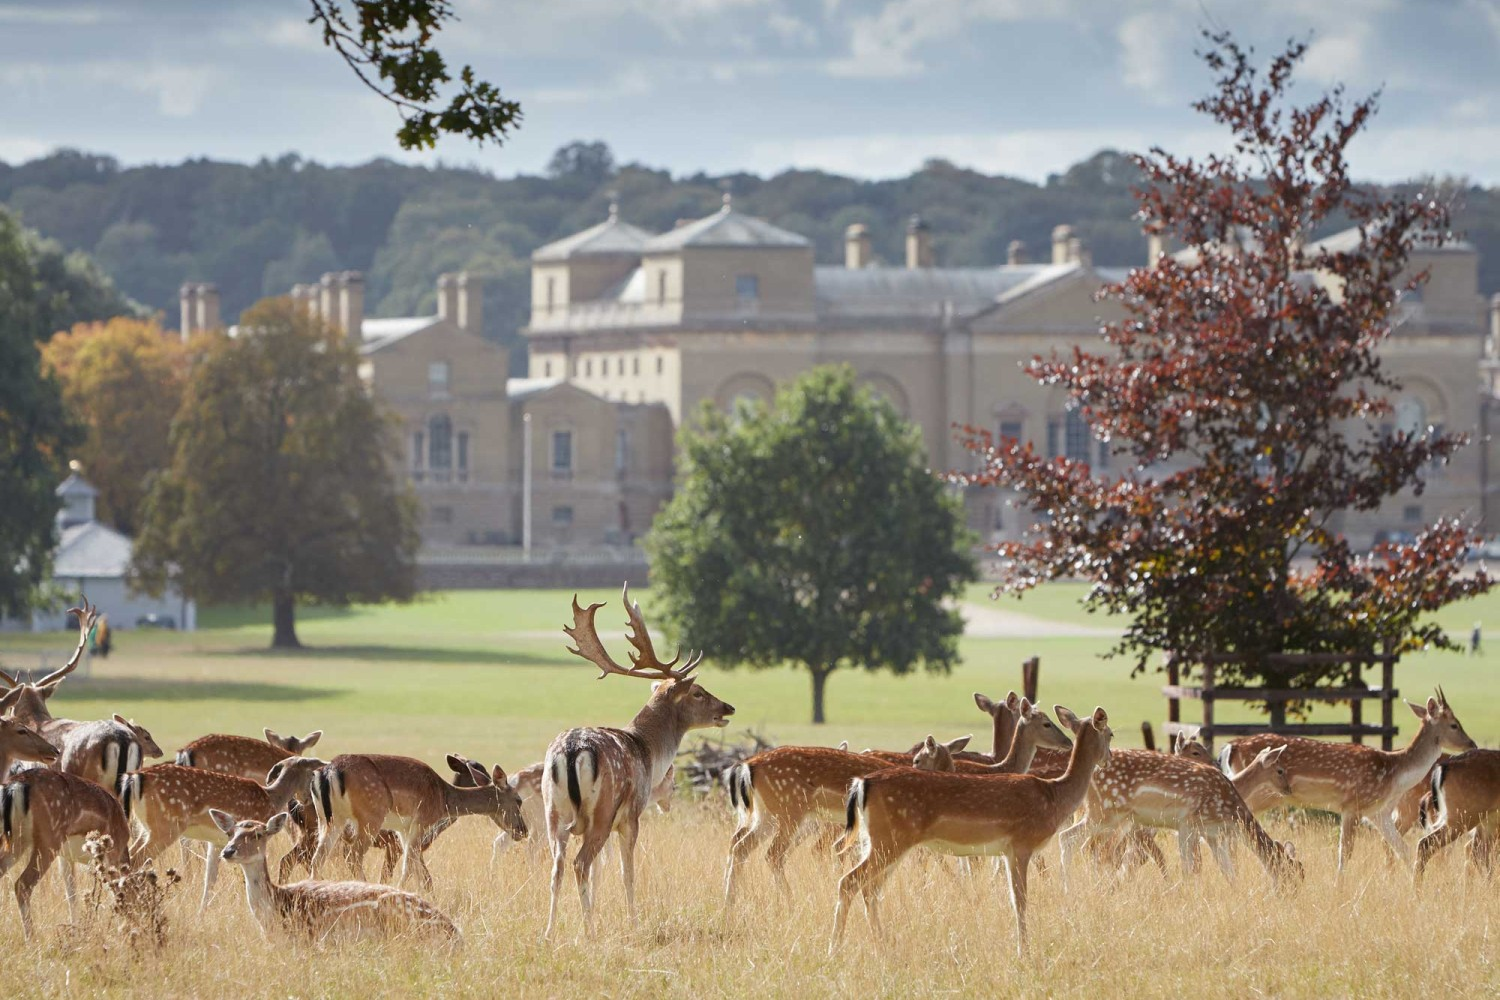 The Holkham estate's fallow deer in front of the magnificent hall itself